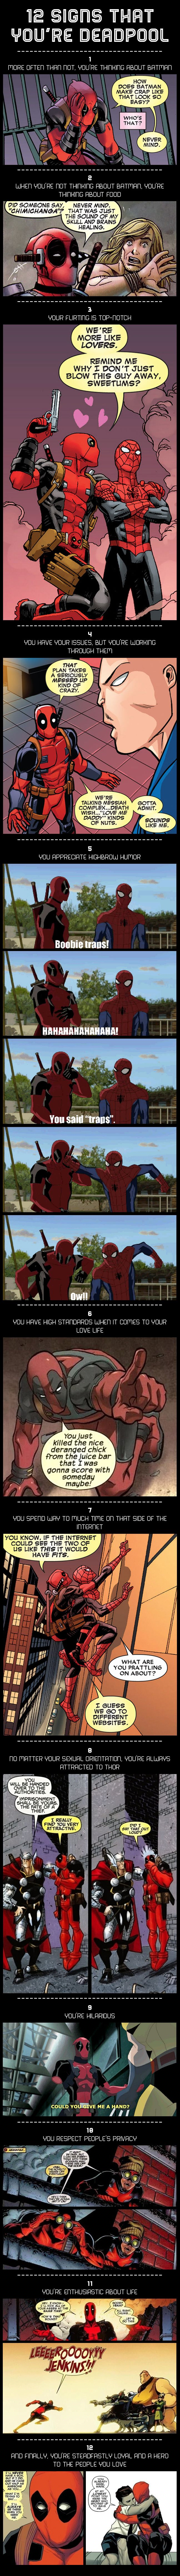 12 Signs That You're Deadpool